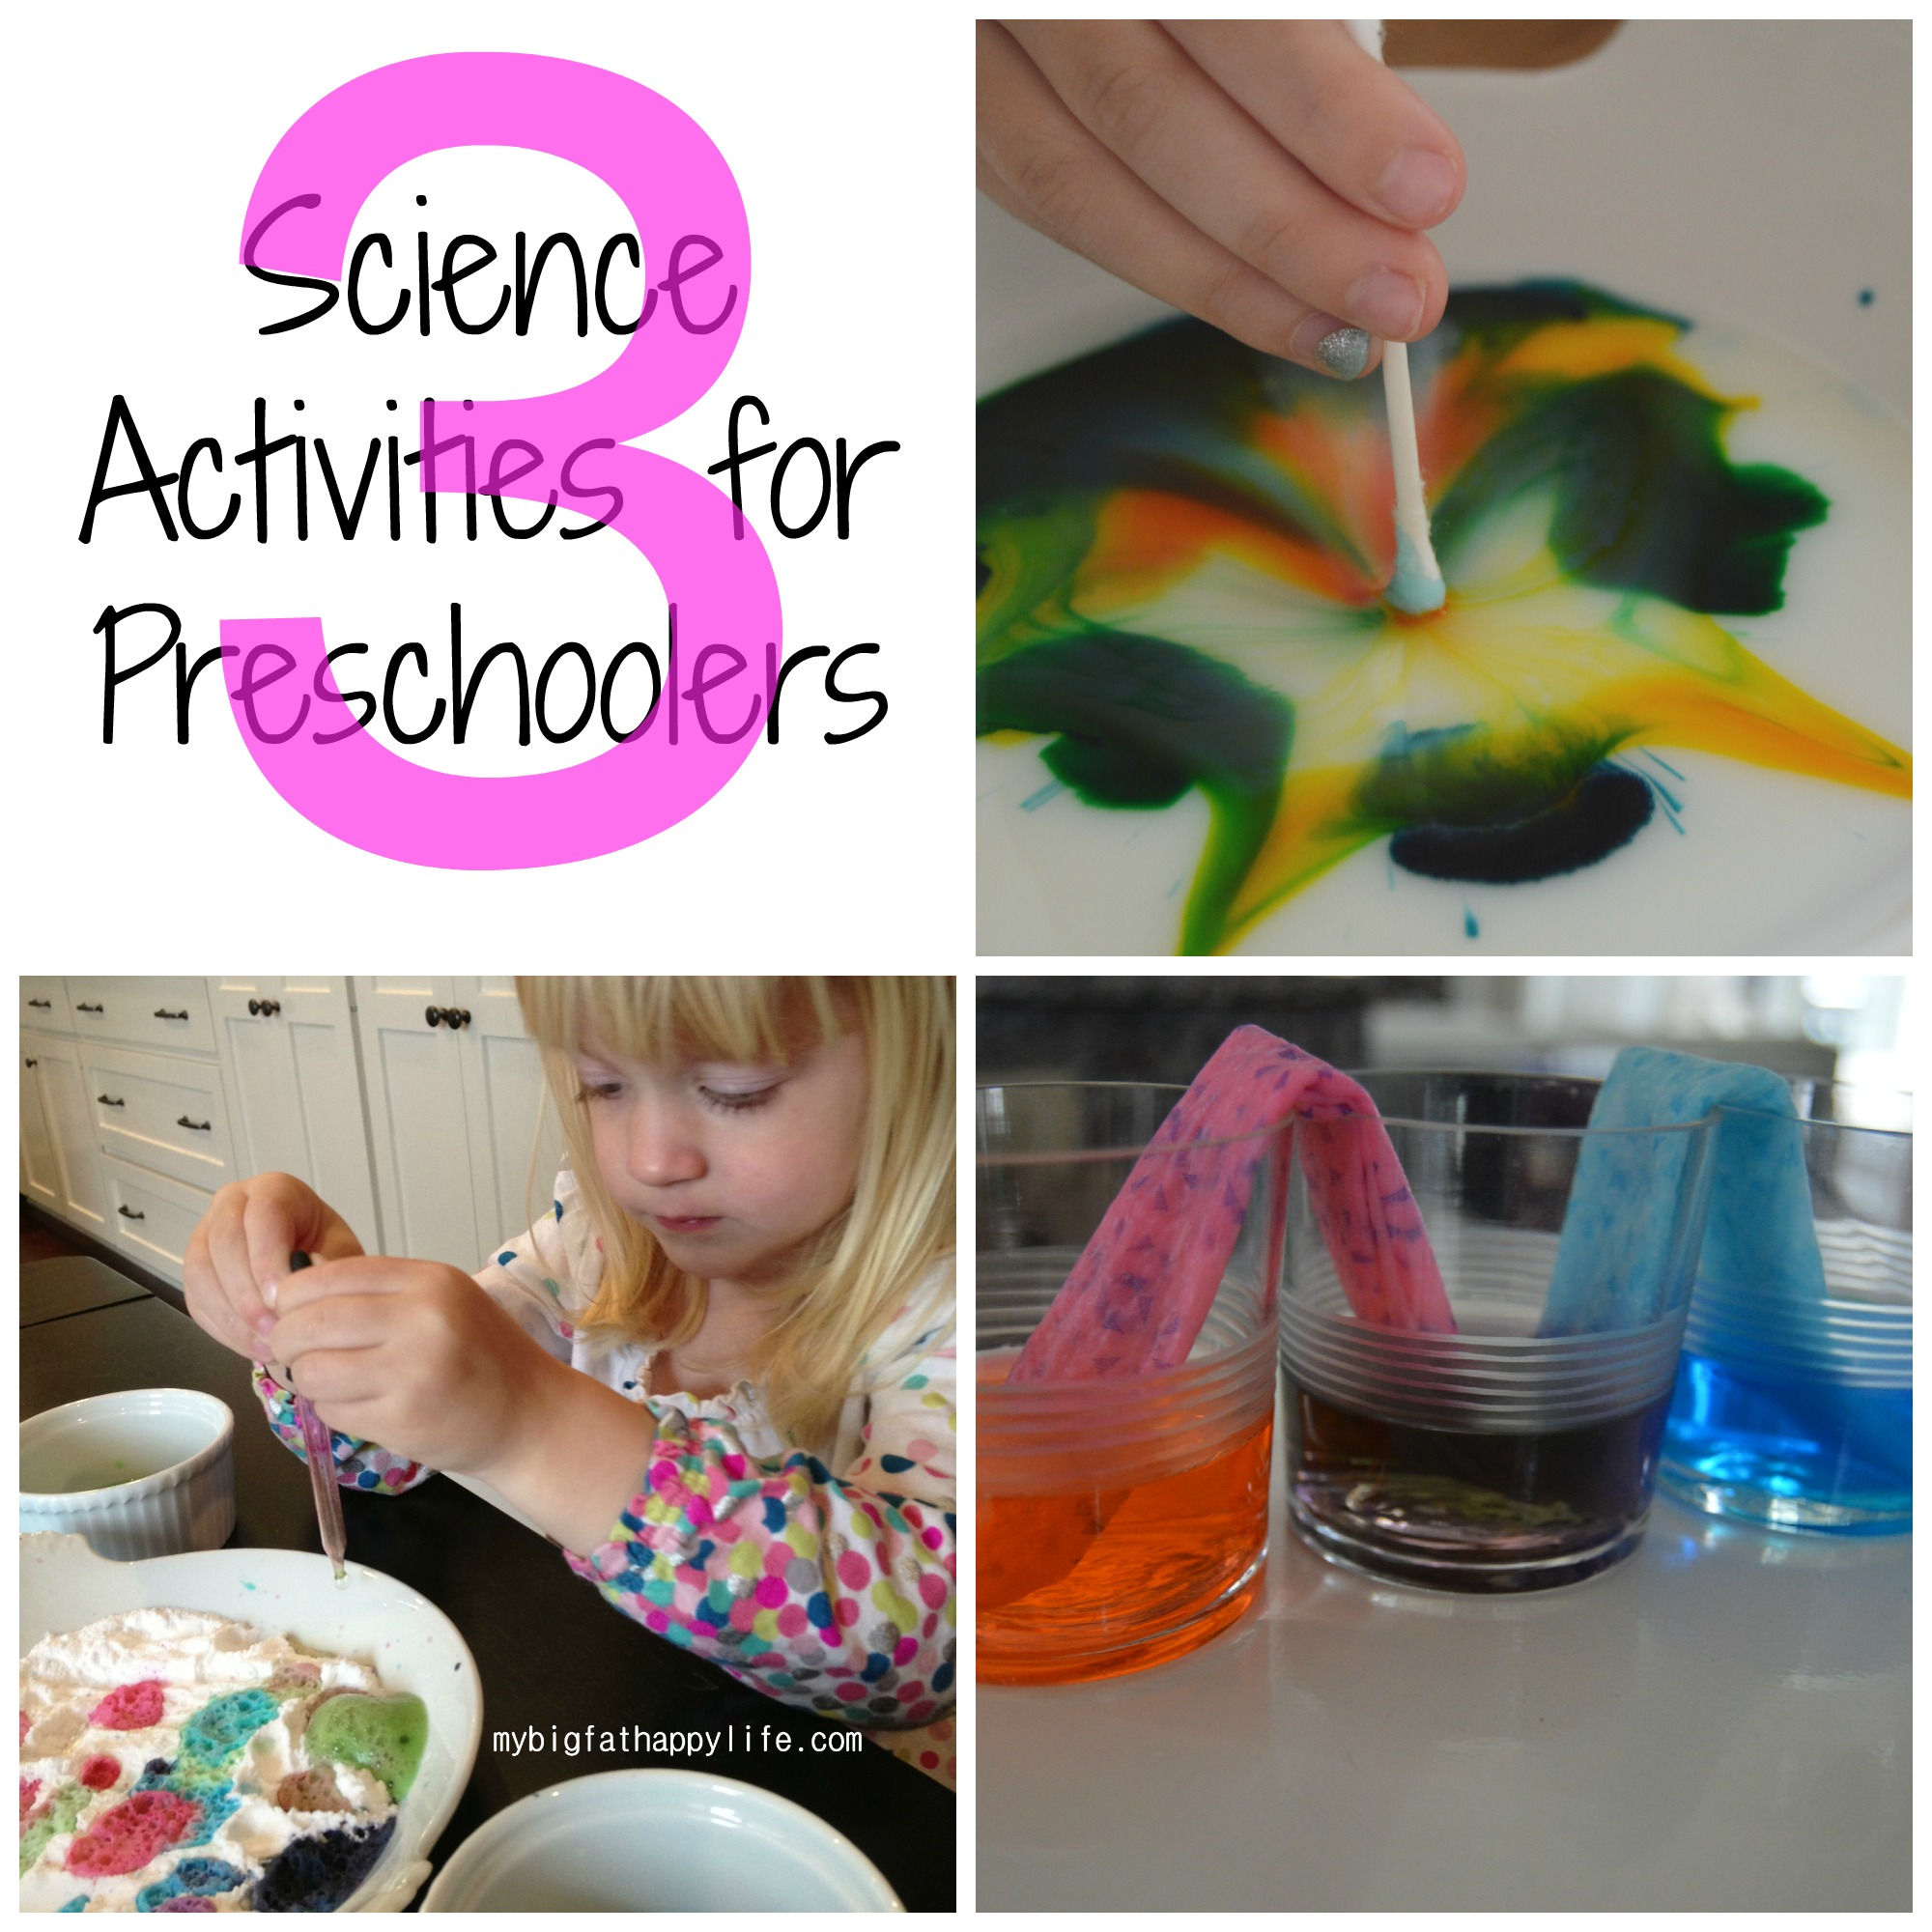 3 Science Activities For Preschoolers